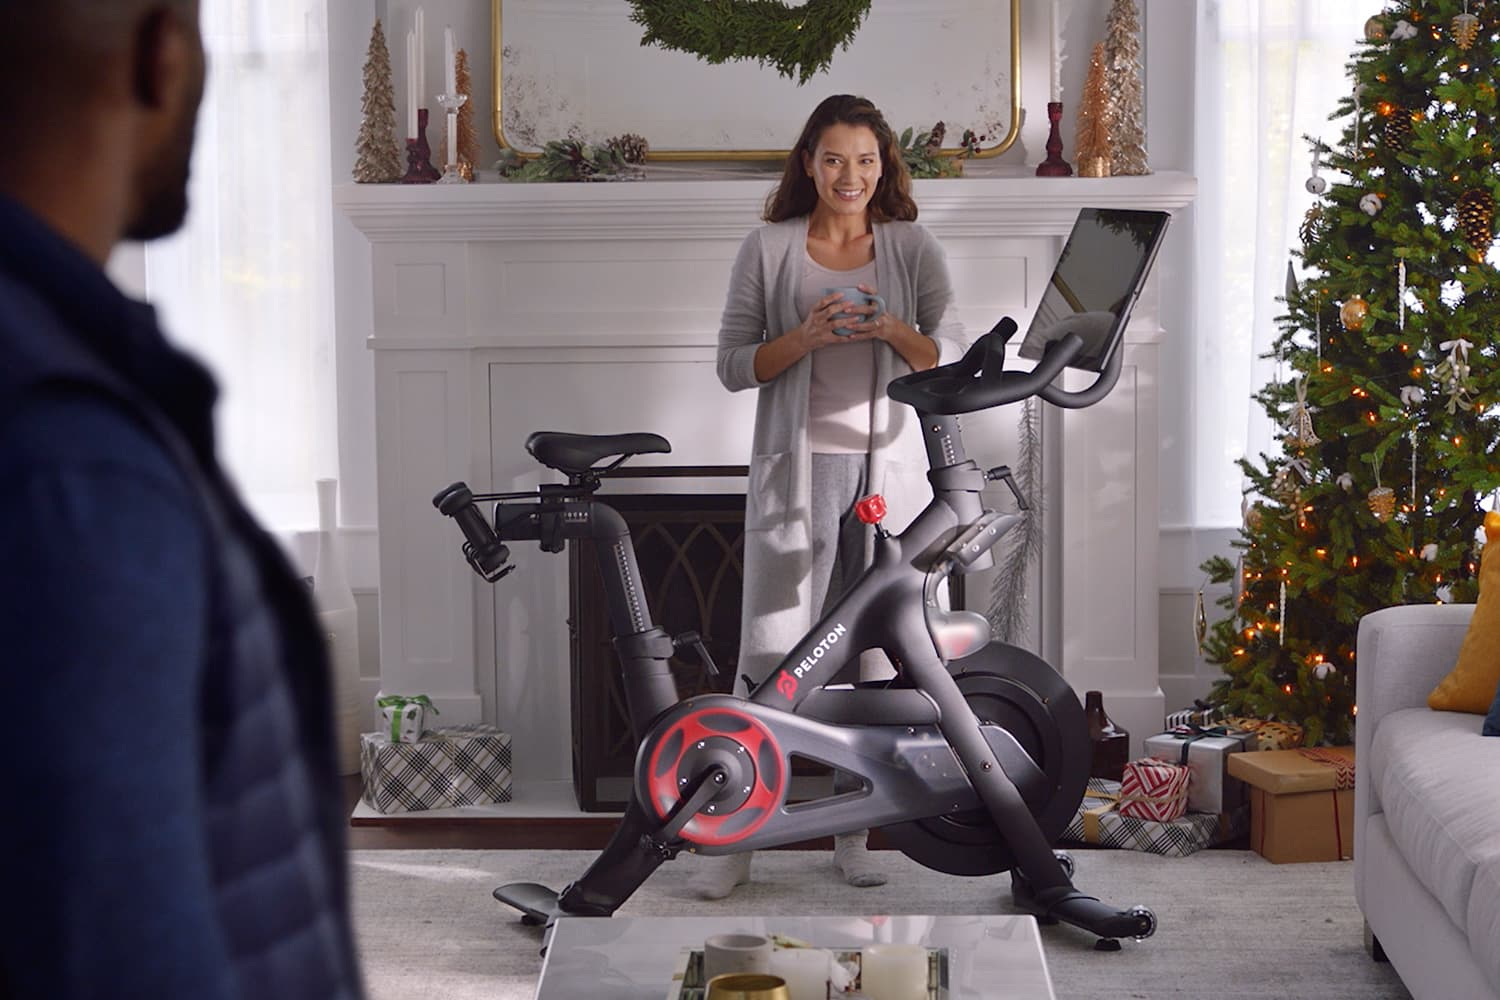 THE GIFT OF PELOTON